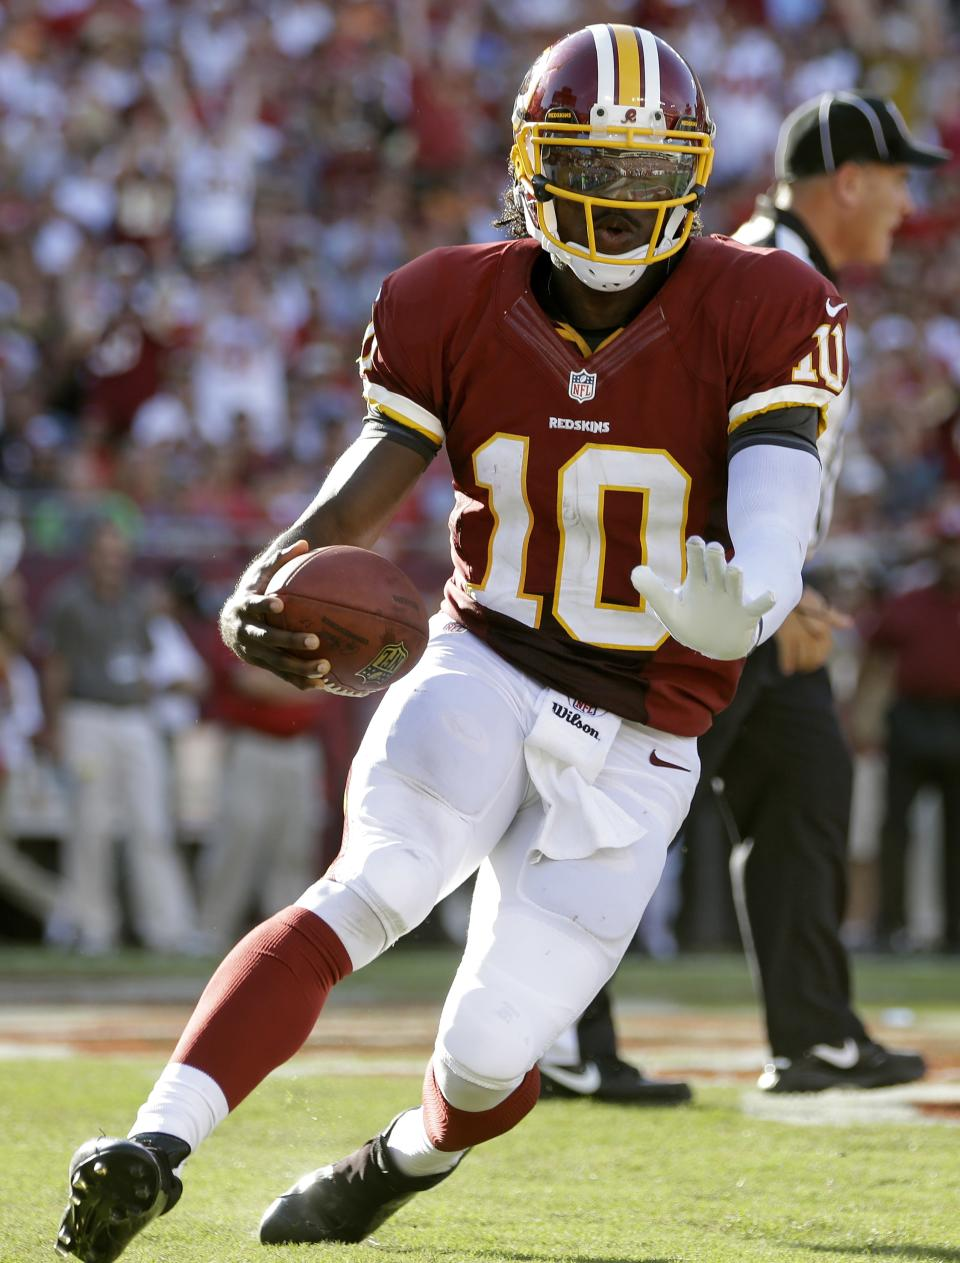 Washington Redskins quarterback Robert Griffin III scores on a five-yard touchdown run against the Tampa Bay Buccaneers during the second quarter of an NFL football game Sunday, Sept. 30, 2012, in Tampa, Fla. (AP Photo/Margaret Bowles)